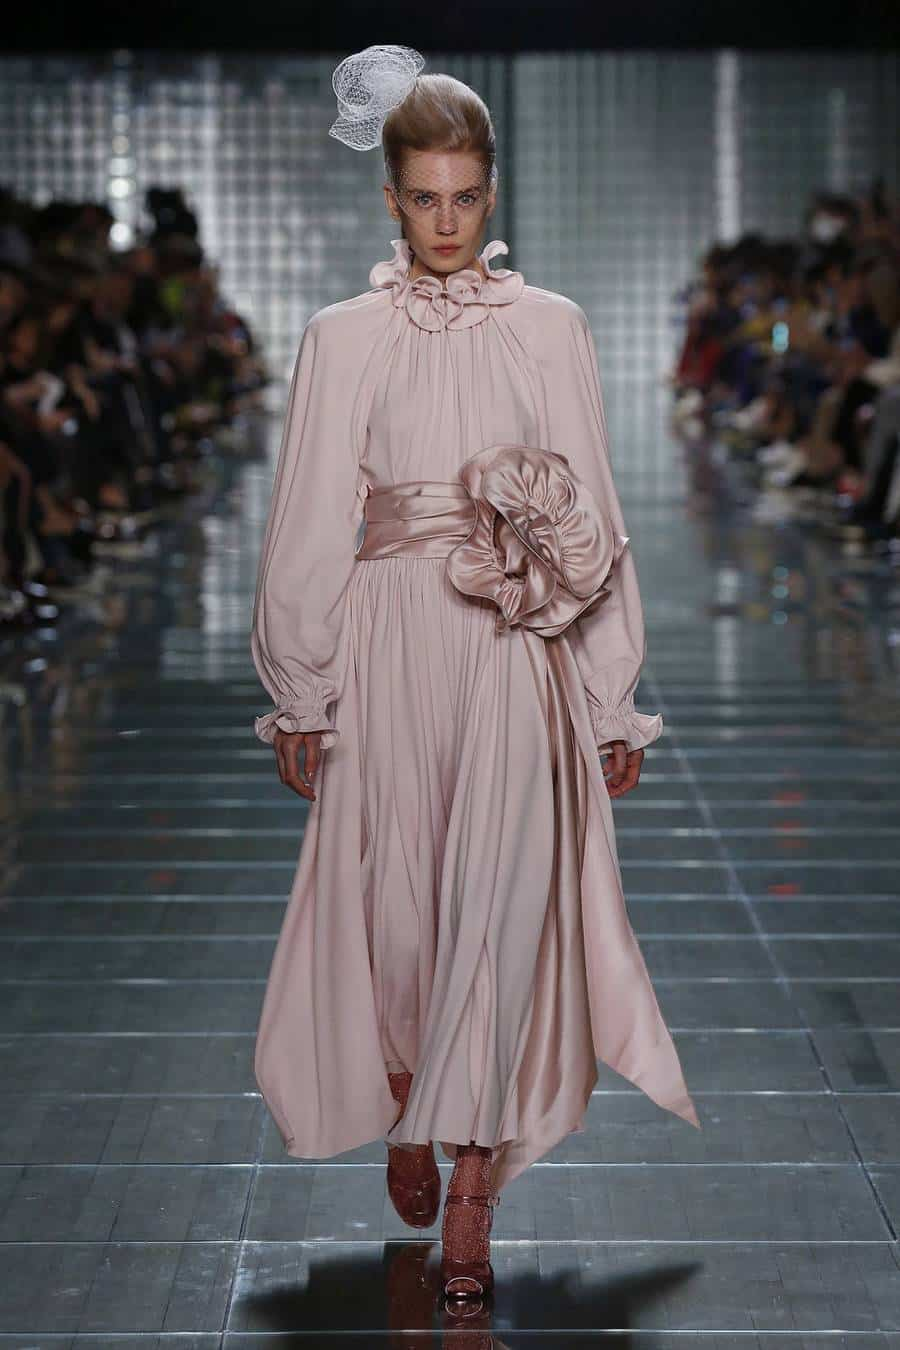 marc jacobs pink dress with puff sleeves